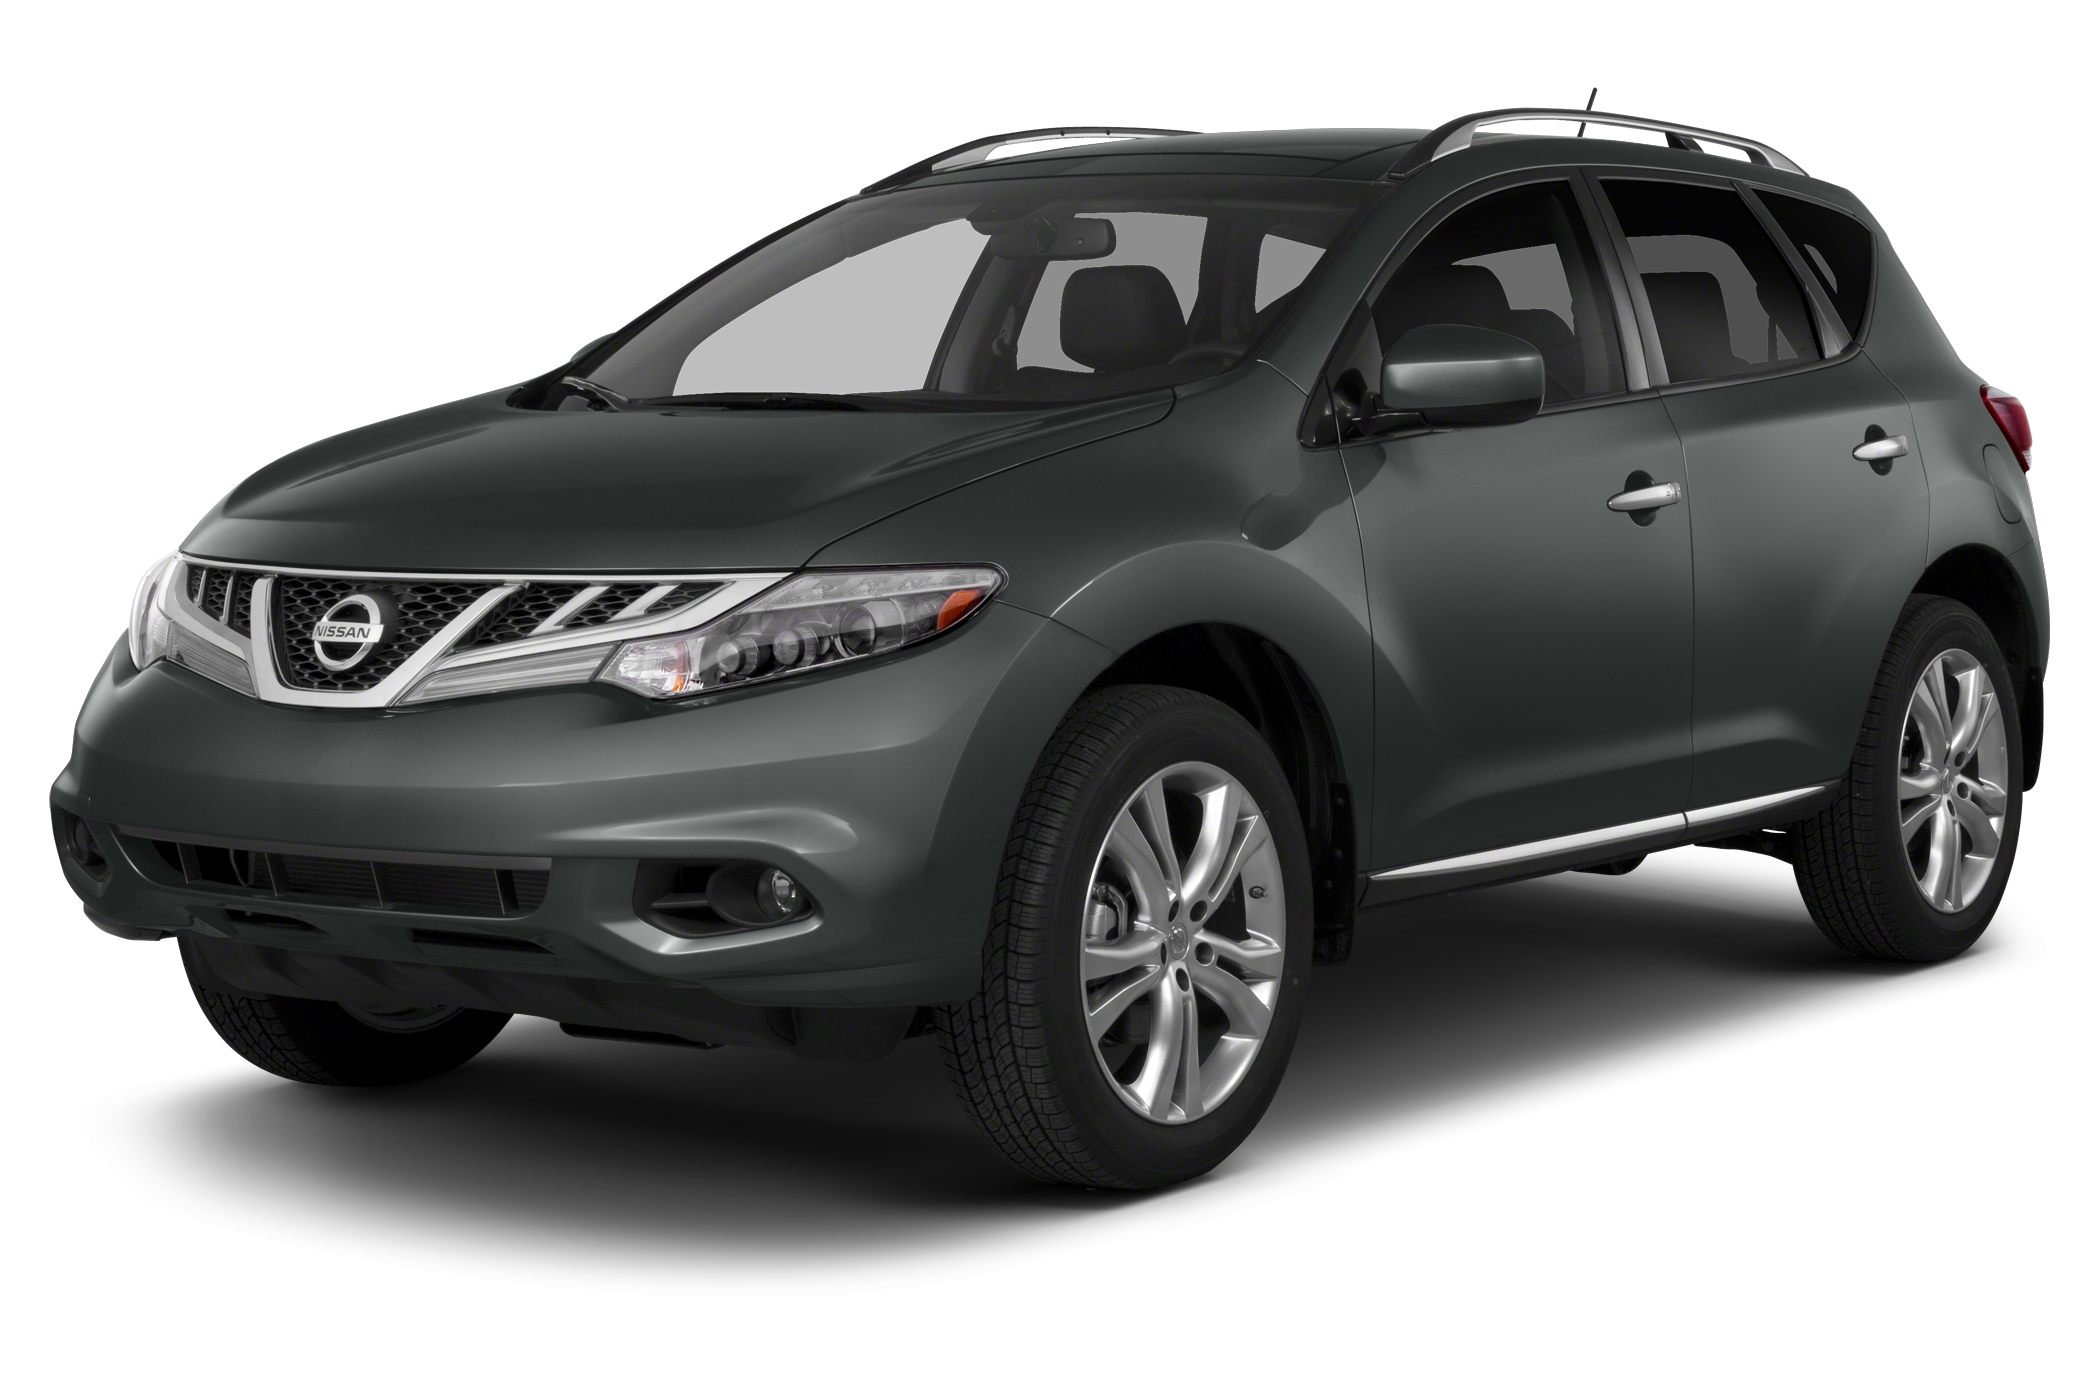 2014 Nissan Murano SV SUV for sale in Merced for $24,999 with 15,446 miles.